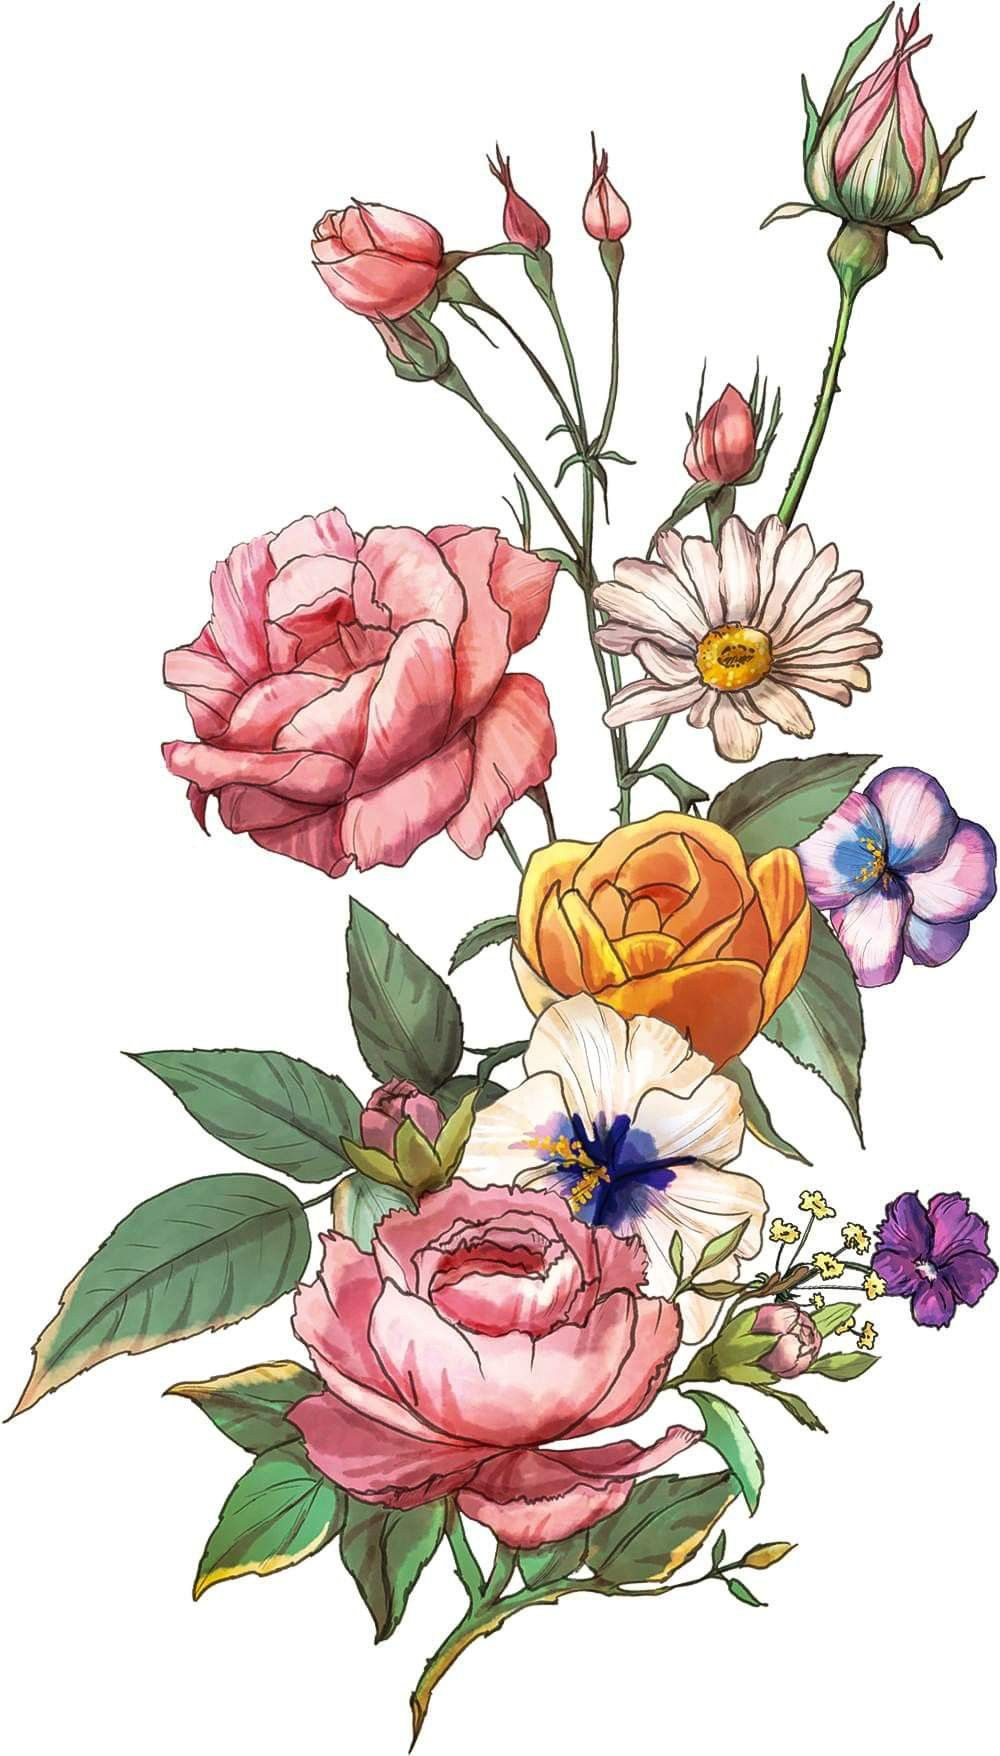 Flower Painting By Fsmir Z On Illustrations Painting Drawing In